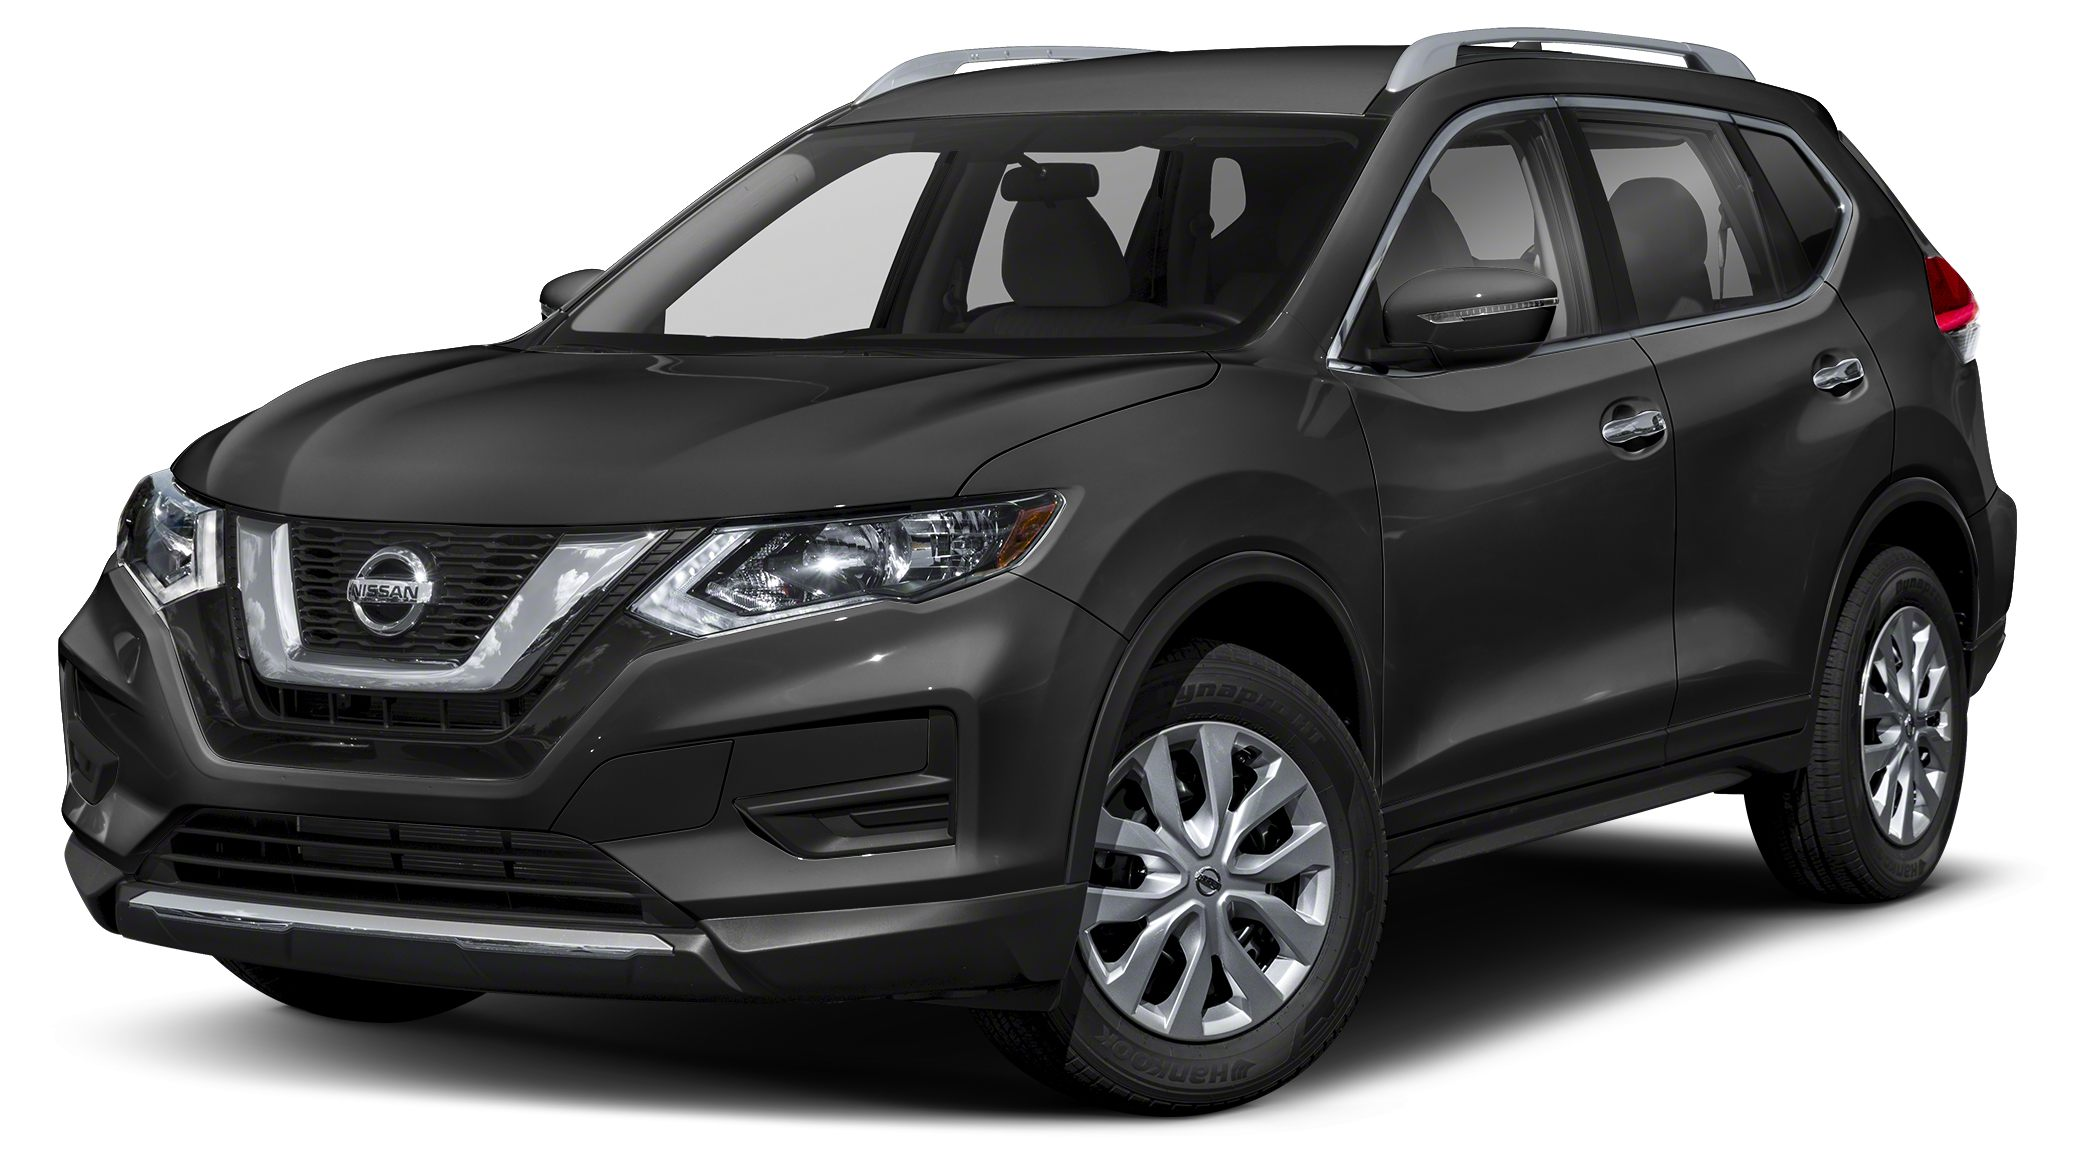 2017 Nissan Rogue SV This 2017 Nissan Rogue SV will sell fast This Rogue has many valuable option